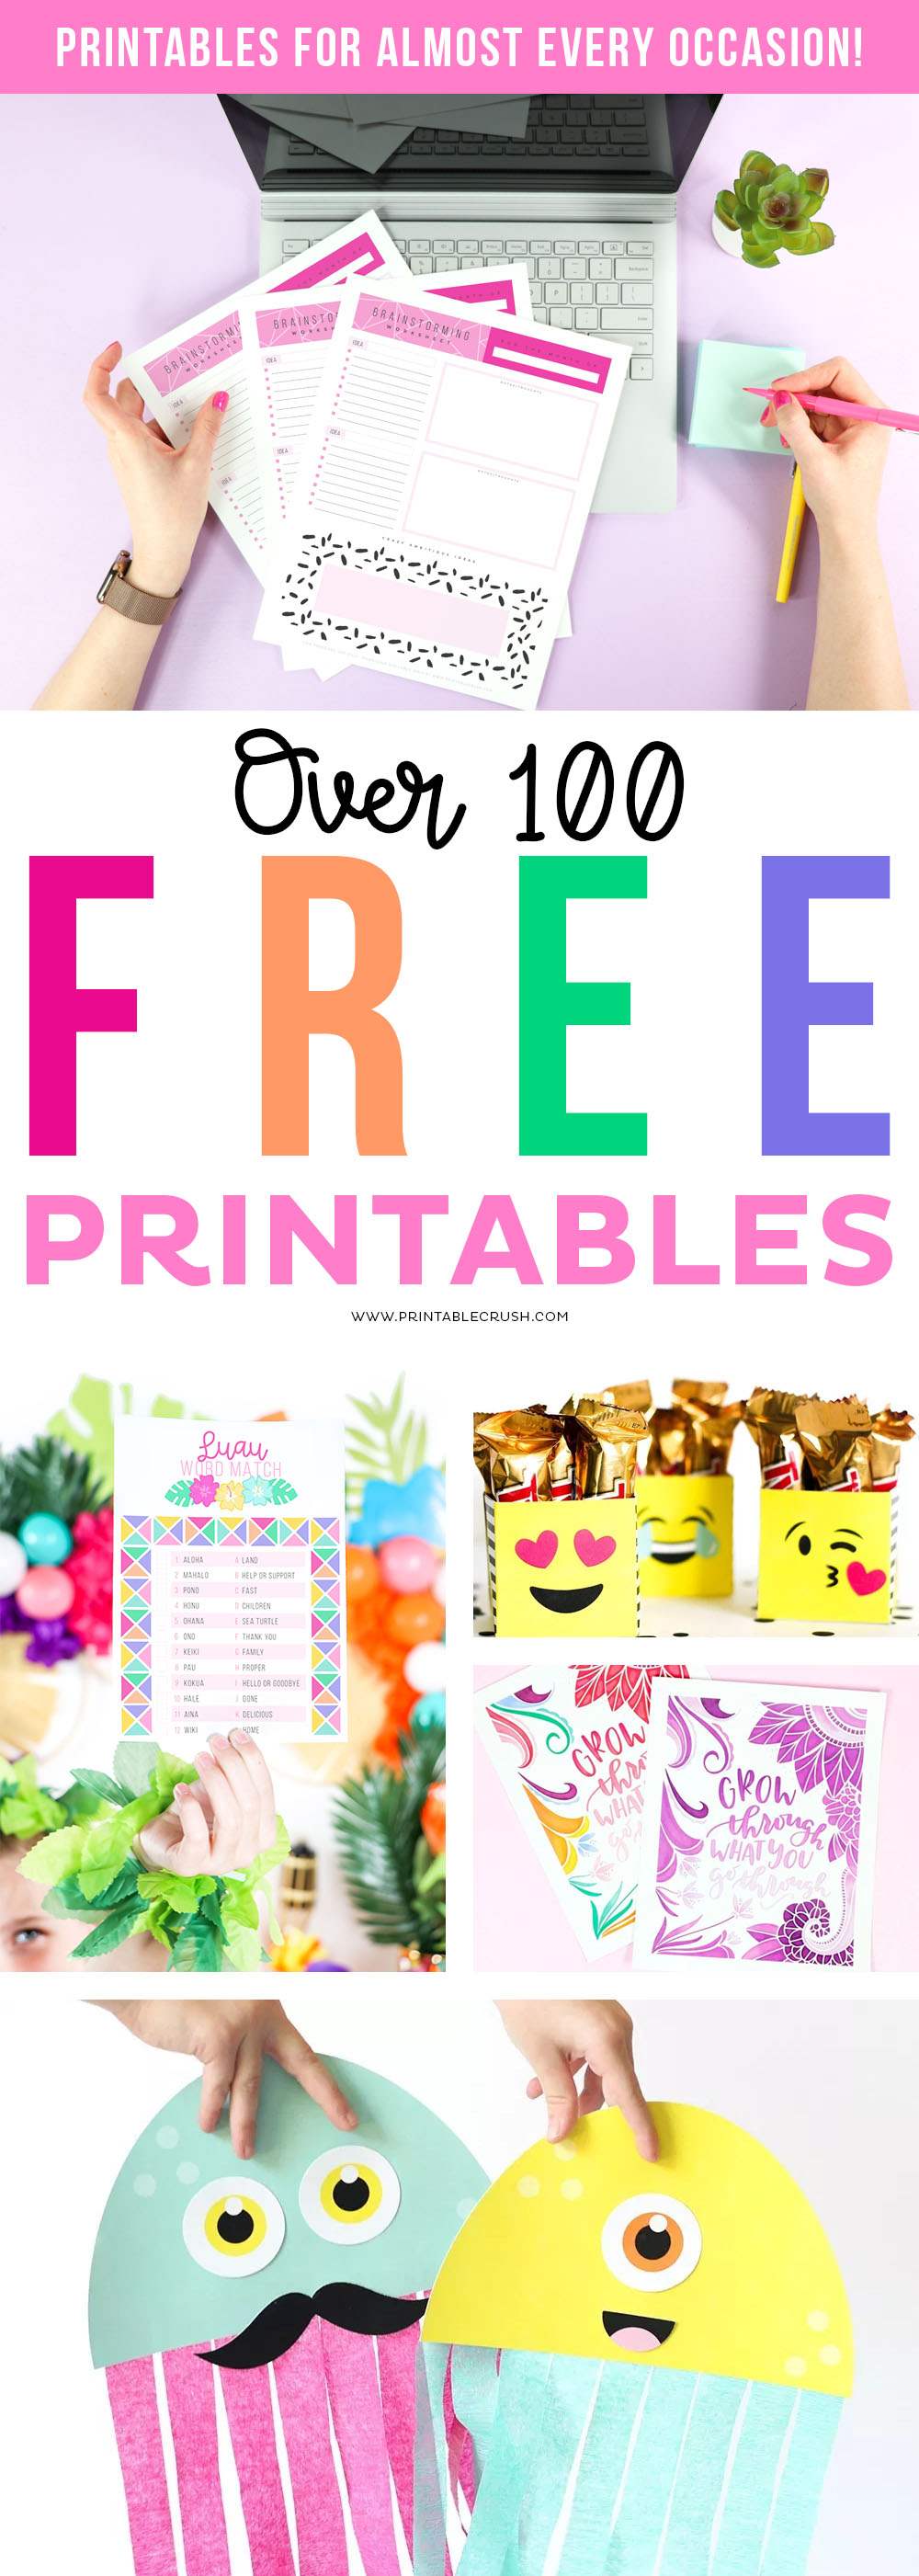 Looking for FREE Printables, but having a problem navigating through Pinterest? You'll love this list of over 100 printables for almost EVERY Occasion!